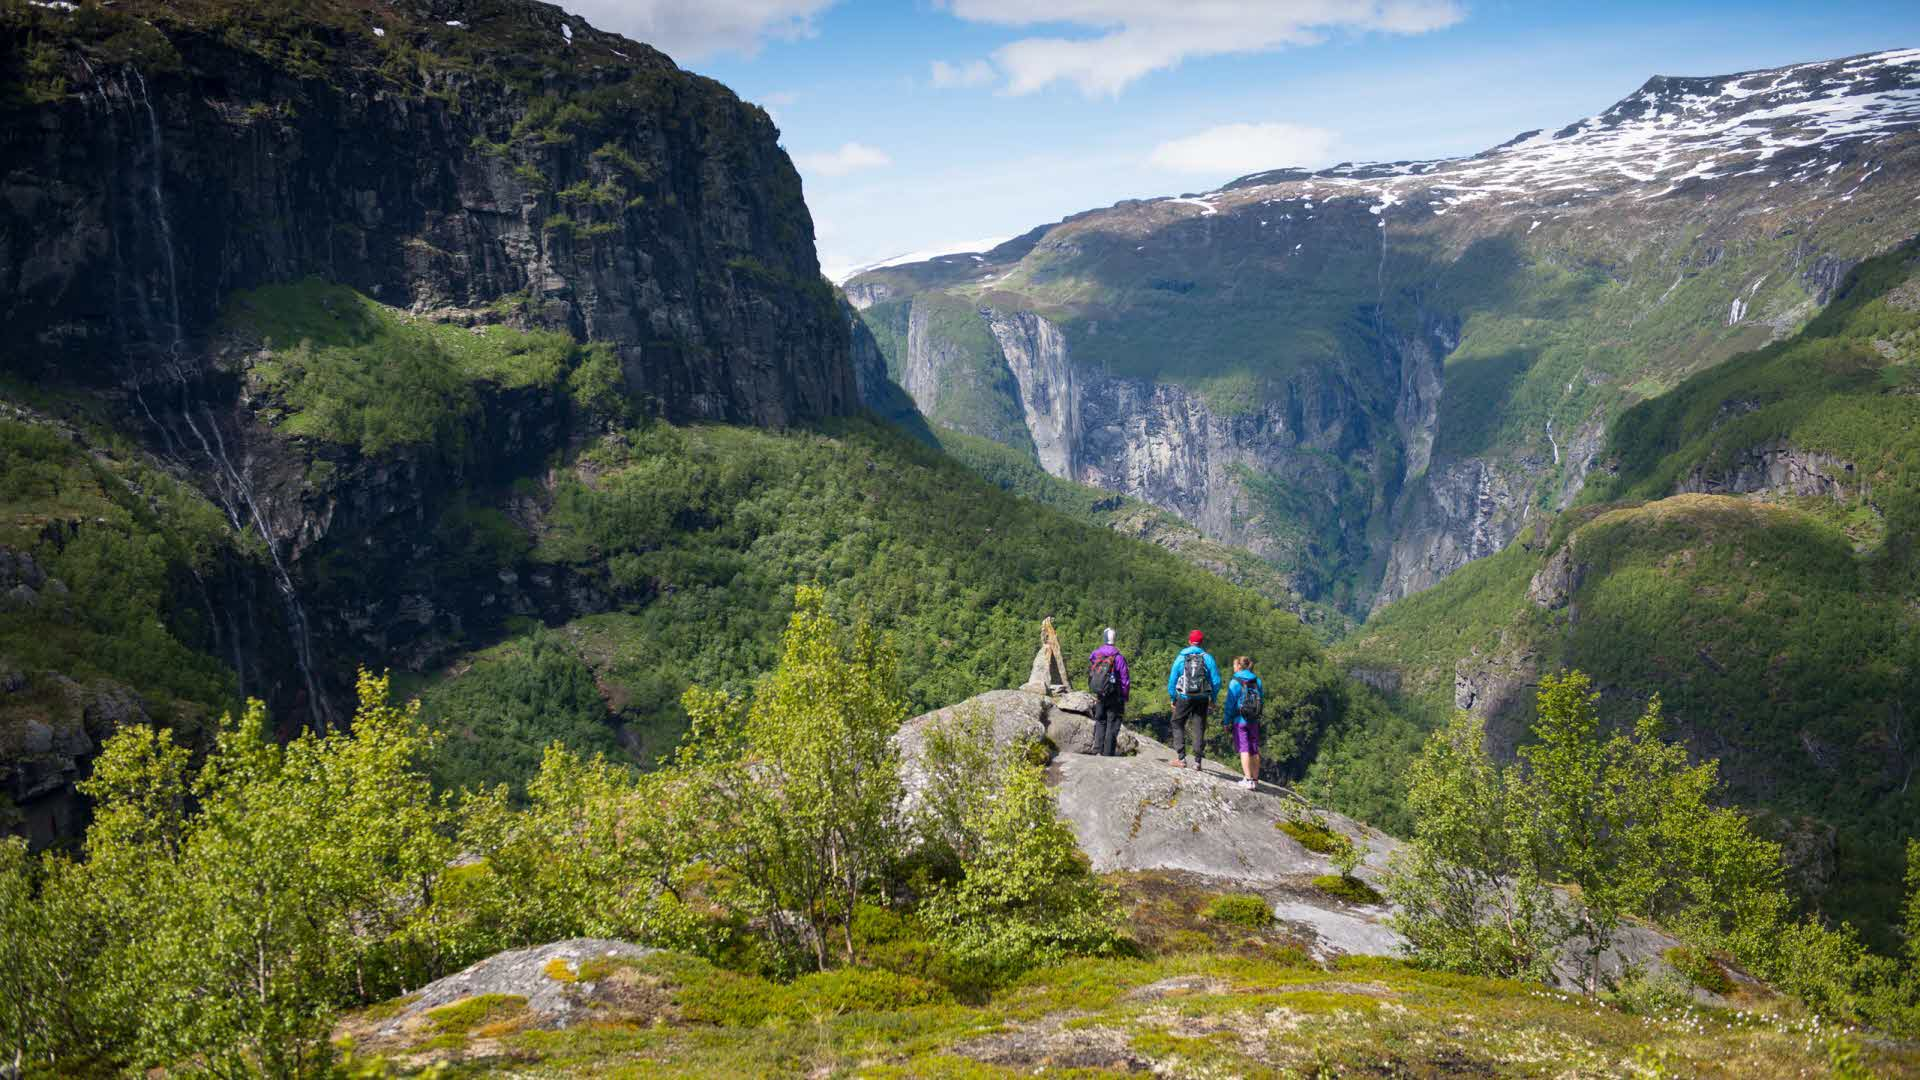 A group of hikers standing on a rock and looking down over the Aurlandsdalen Valley